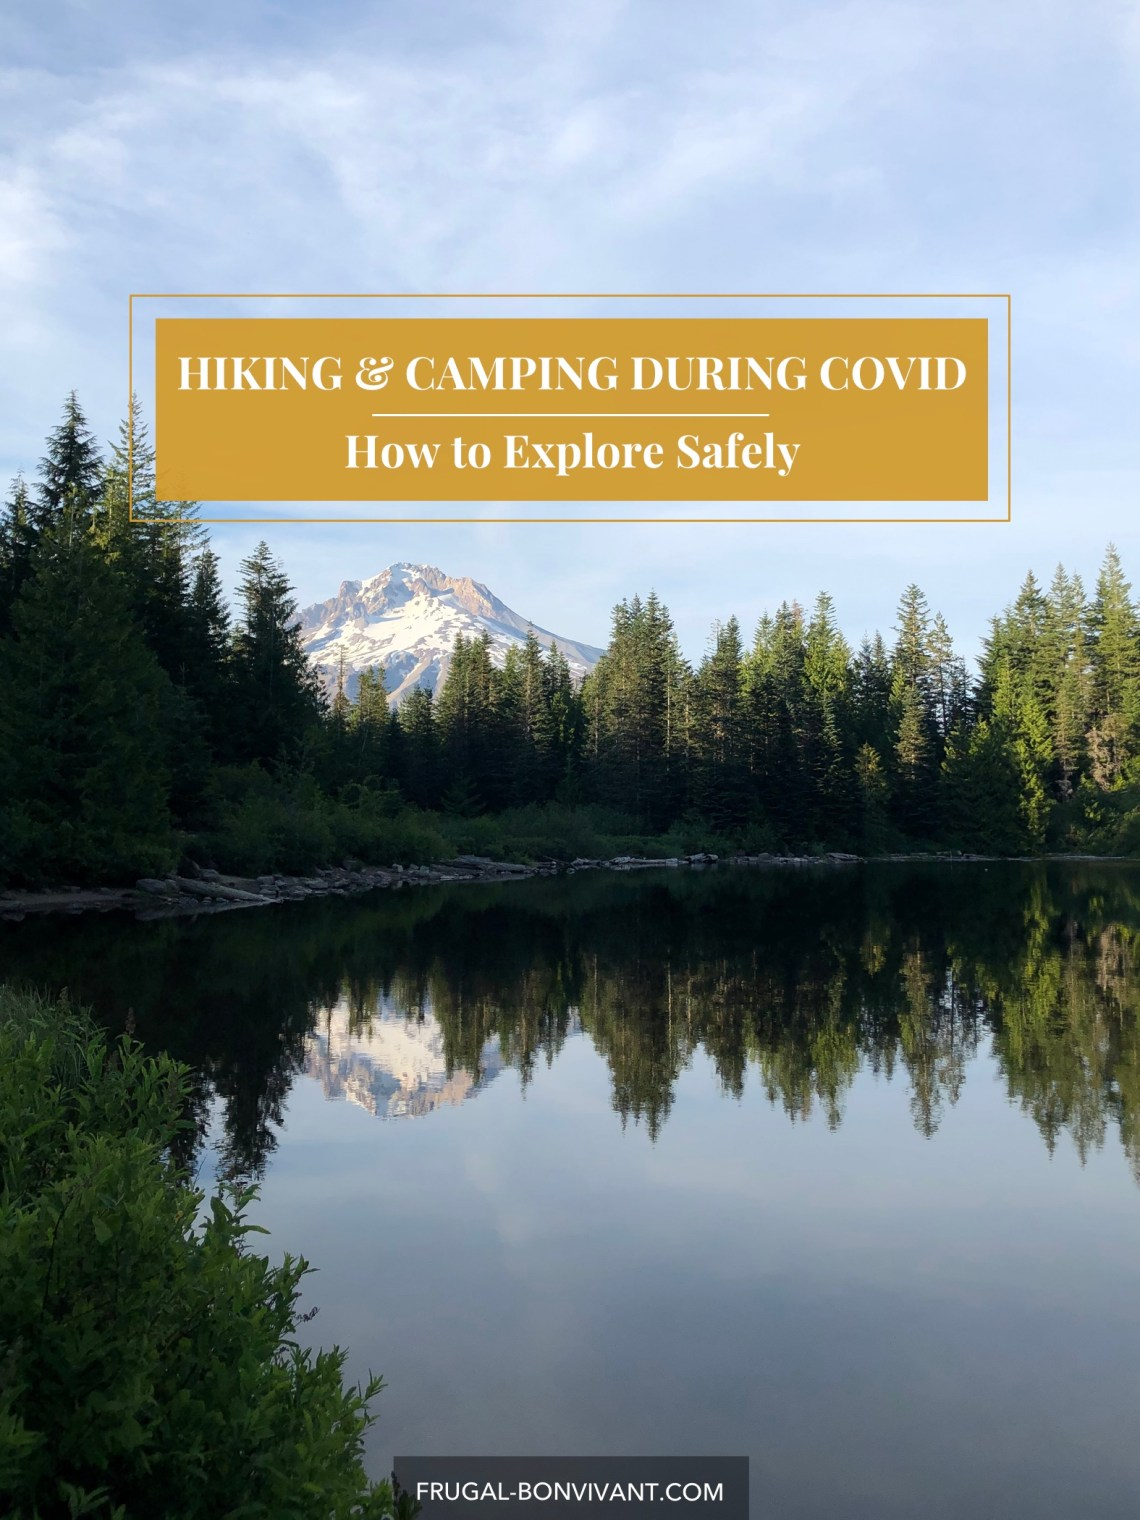 Social Distancing camping and hiking during COVID